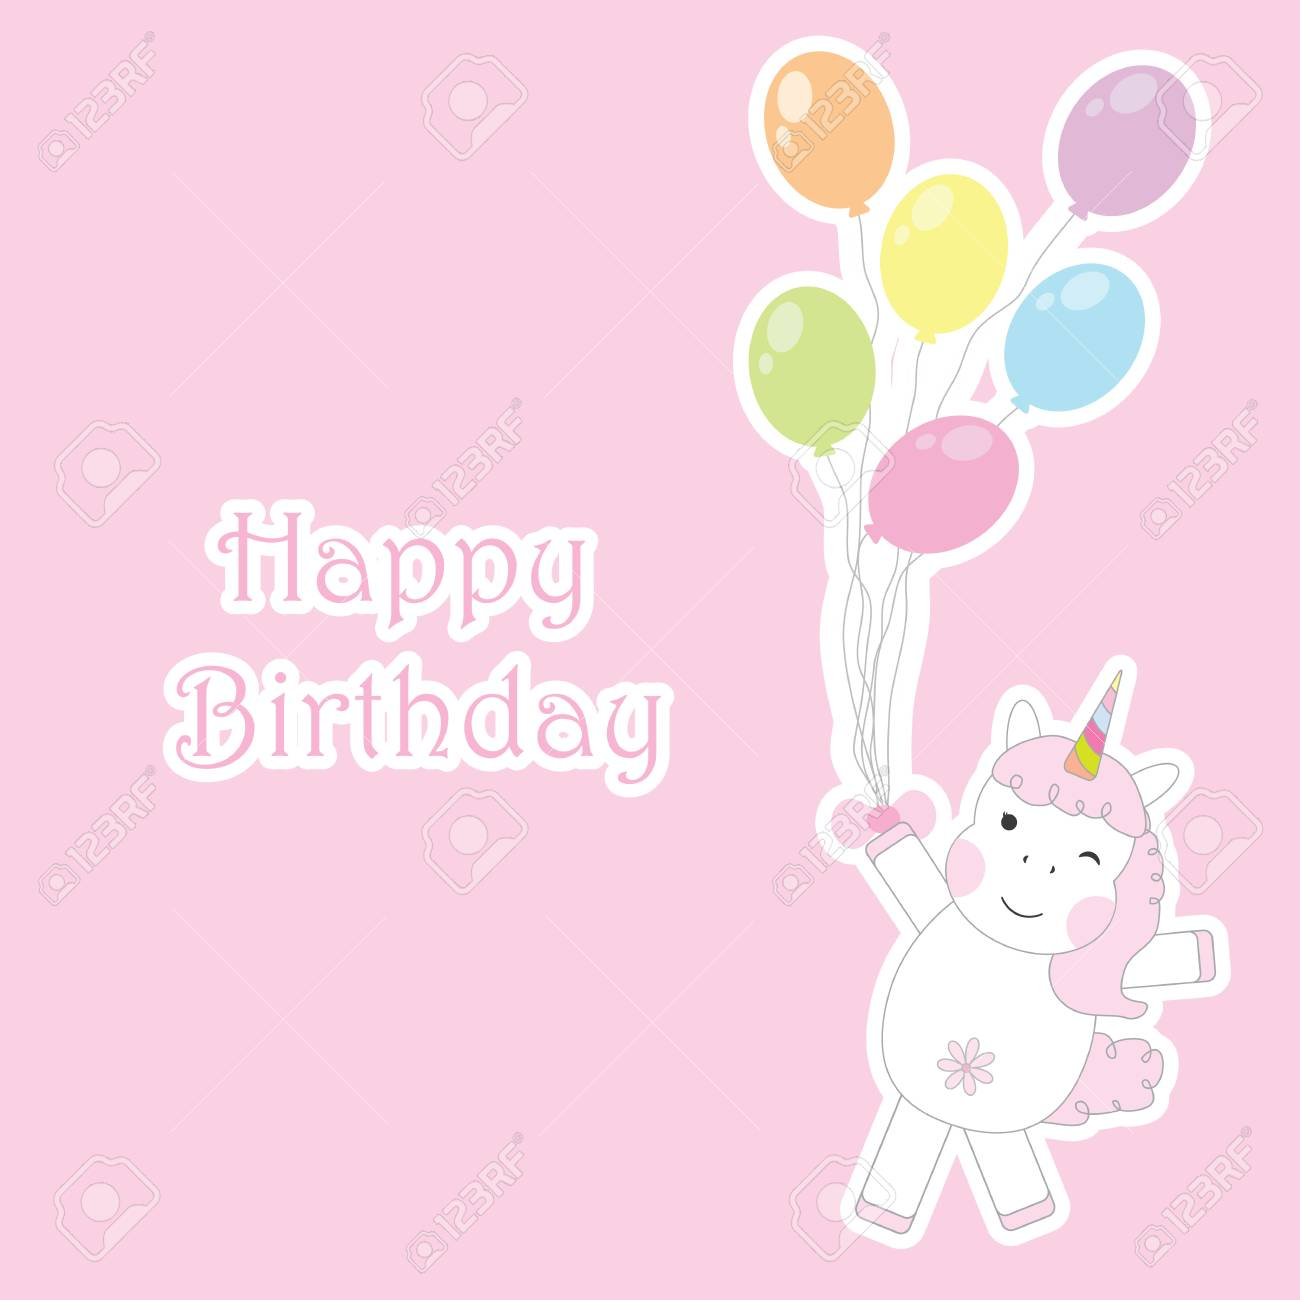 Birthday Card With Cute Unicorns Brings Colorful Balloons Suitable For Greeting Postcard And